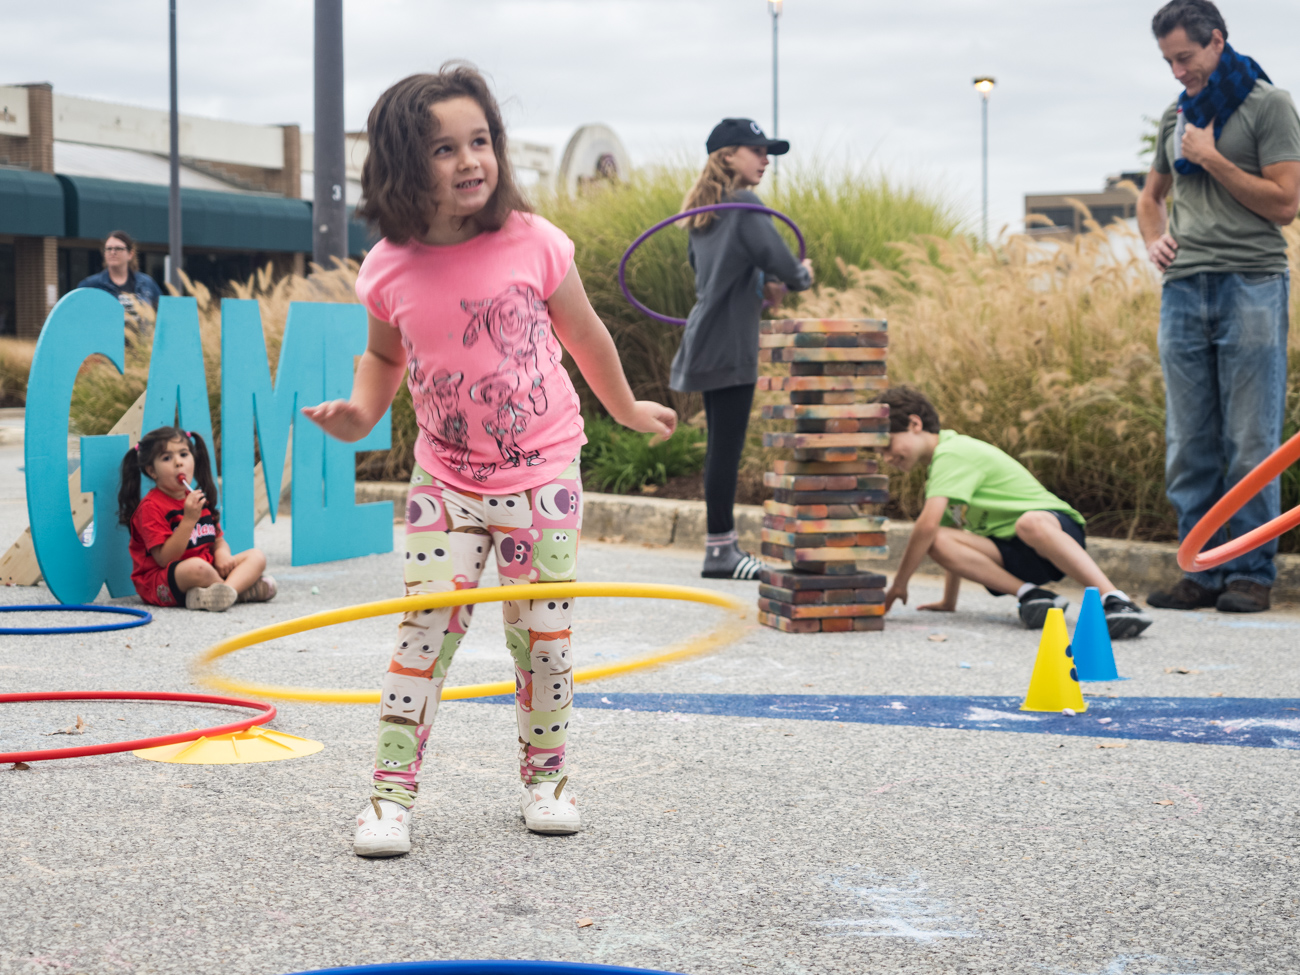 Children playing in Games area at Burtonsville Placemaking Festival